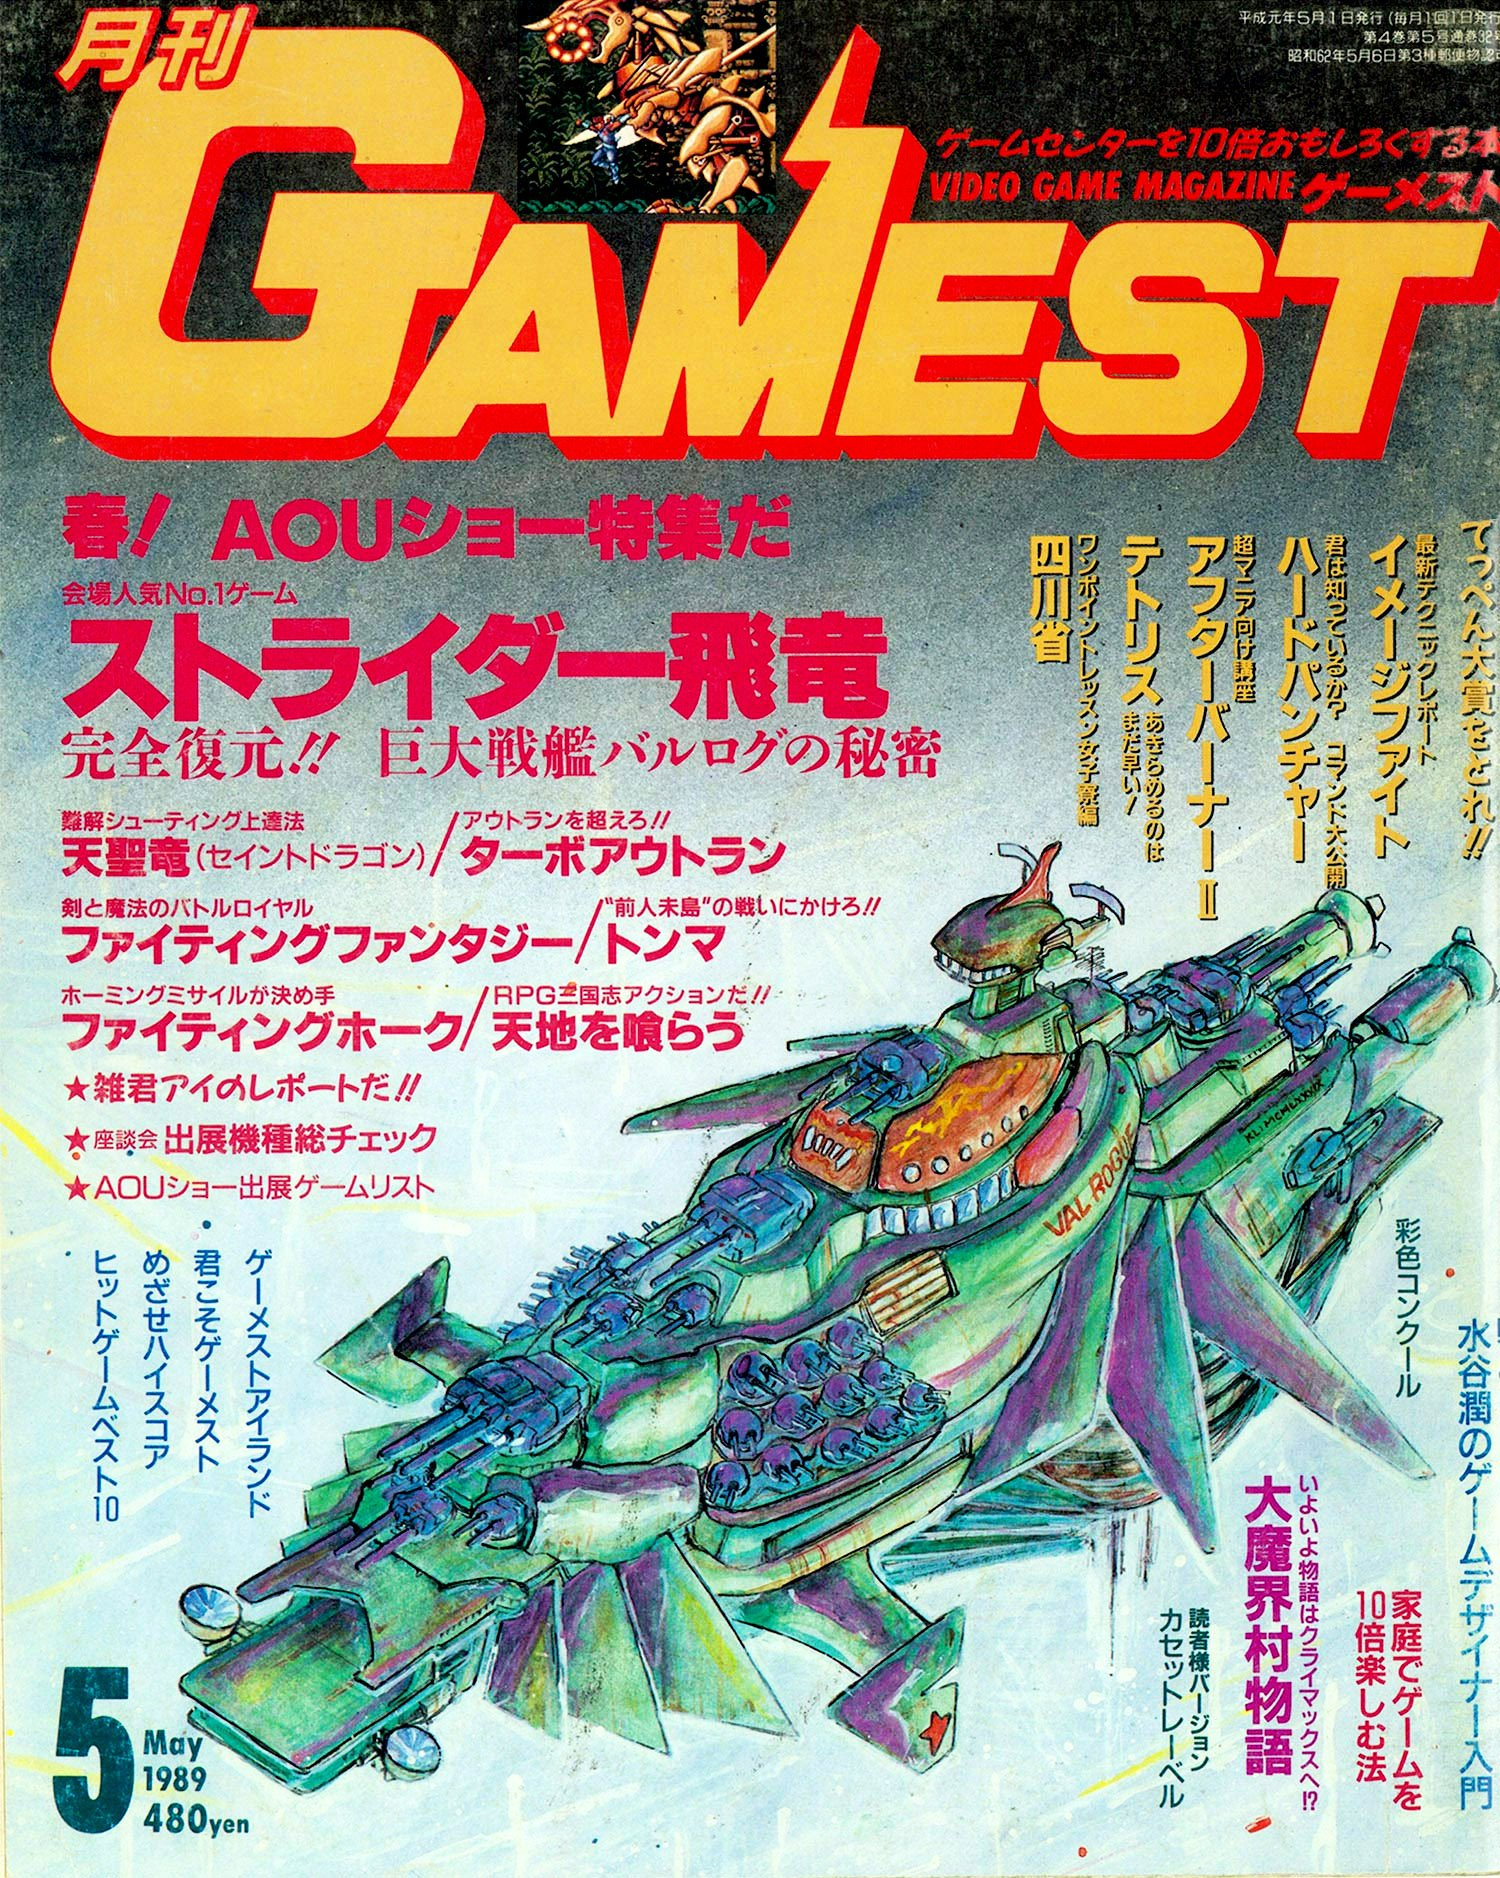 Gamest 032 (May 1989)